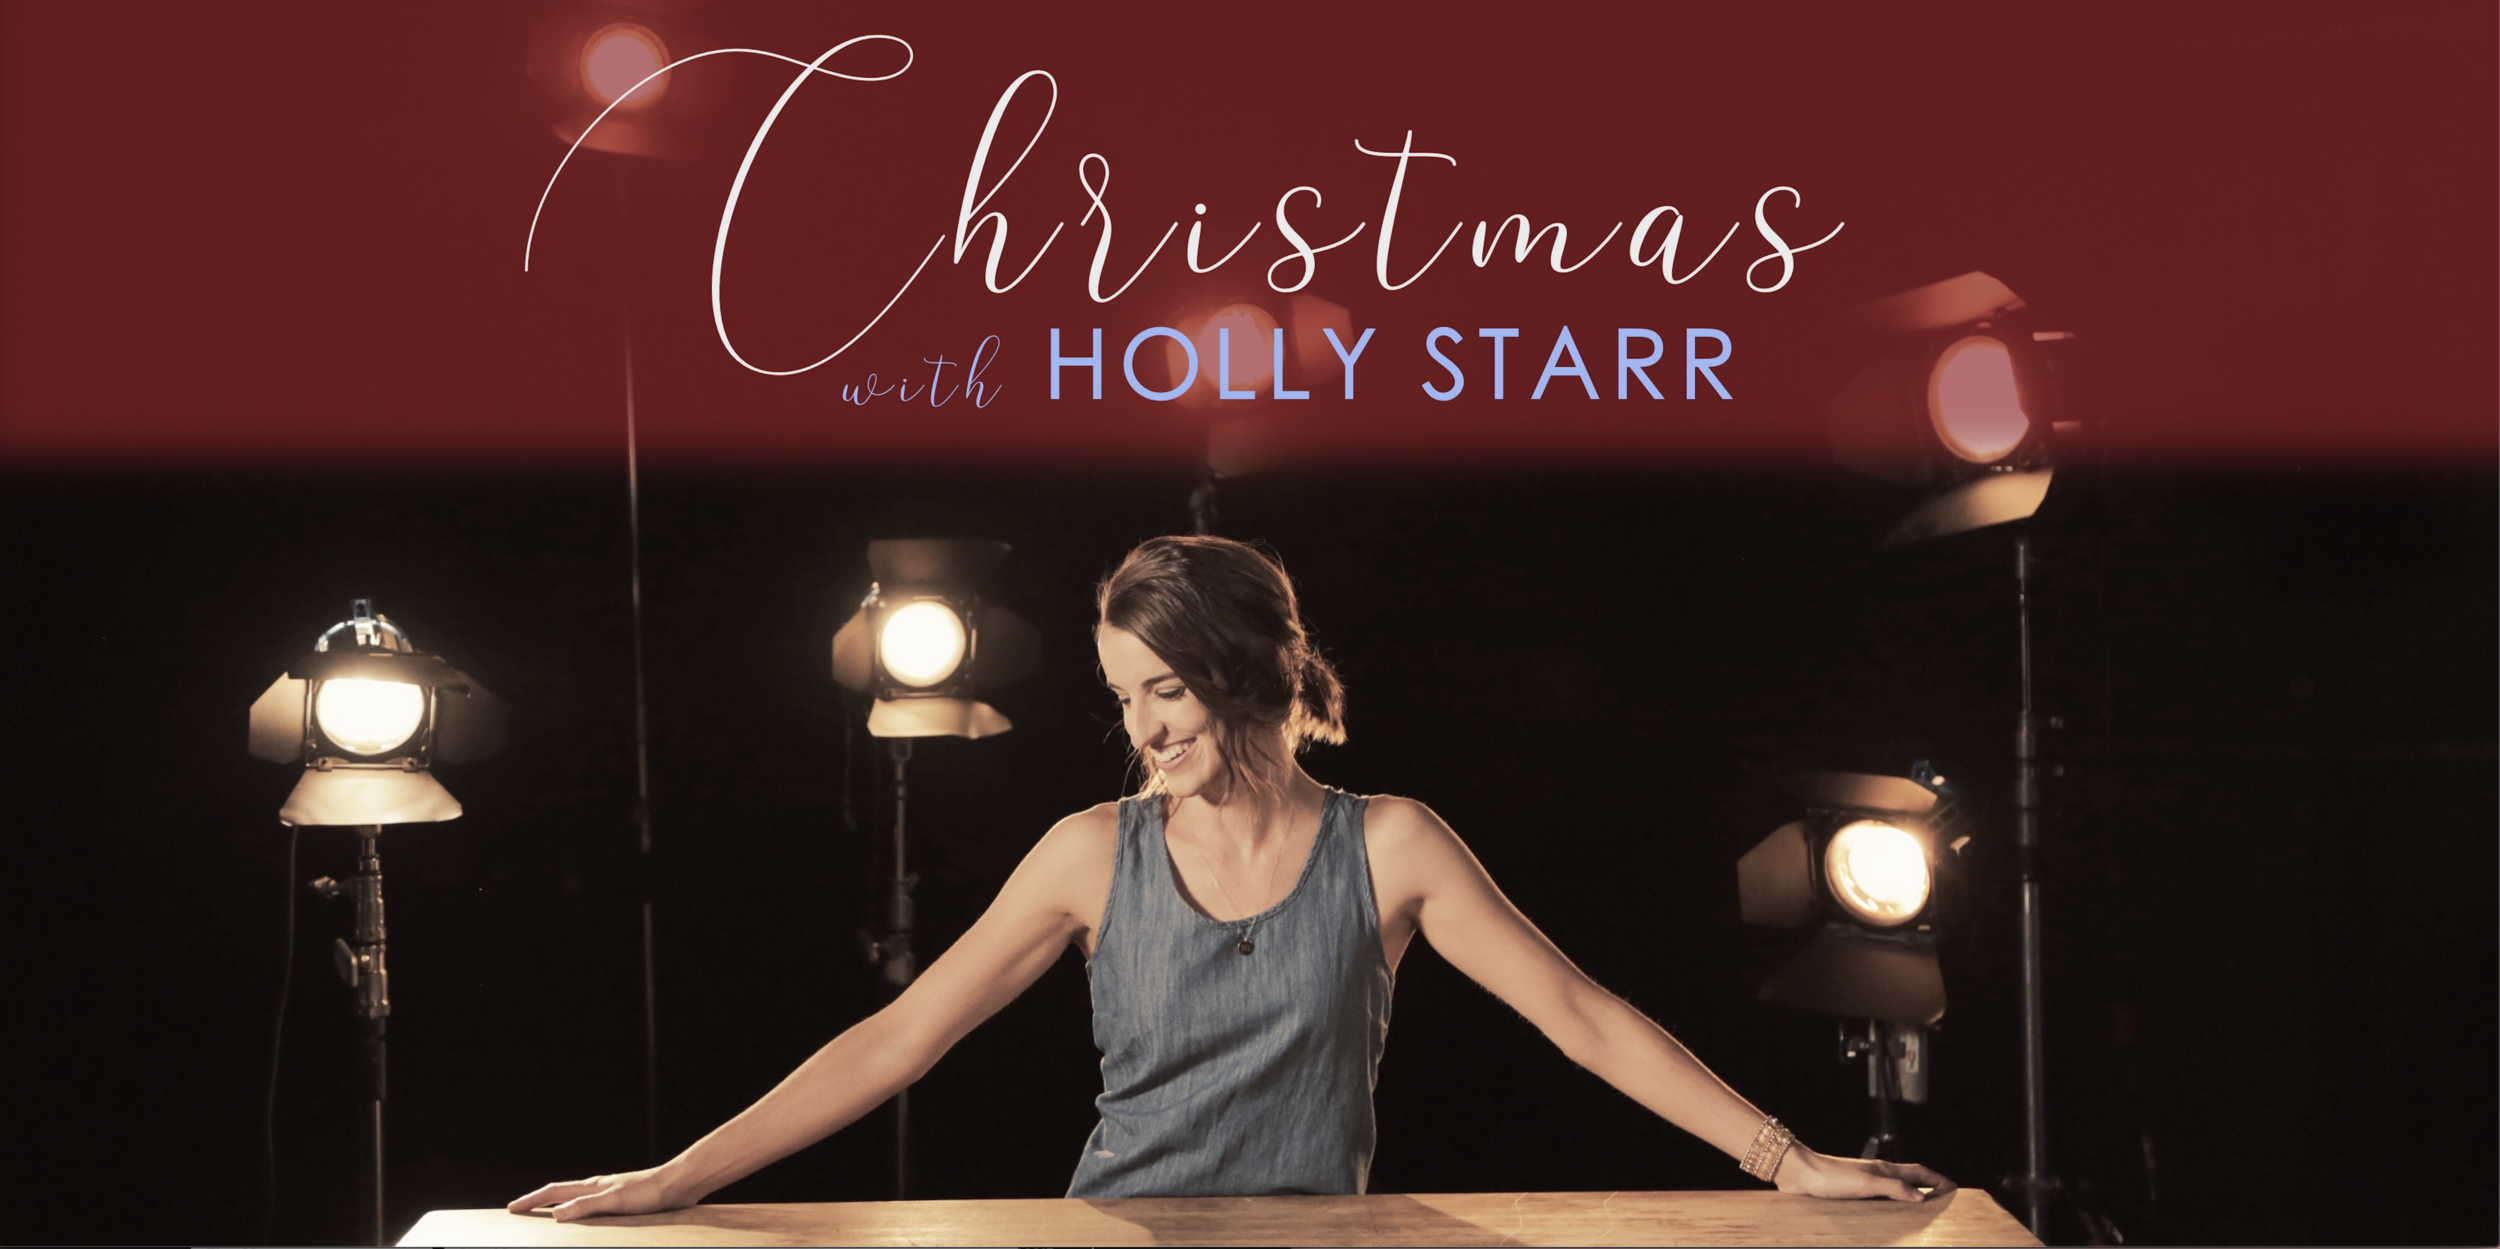 Christmas Wtih Holly Starr.png